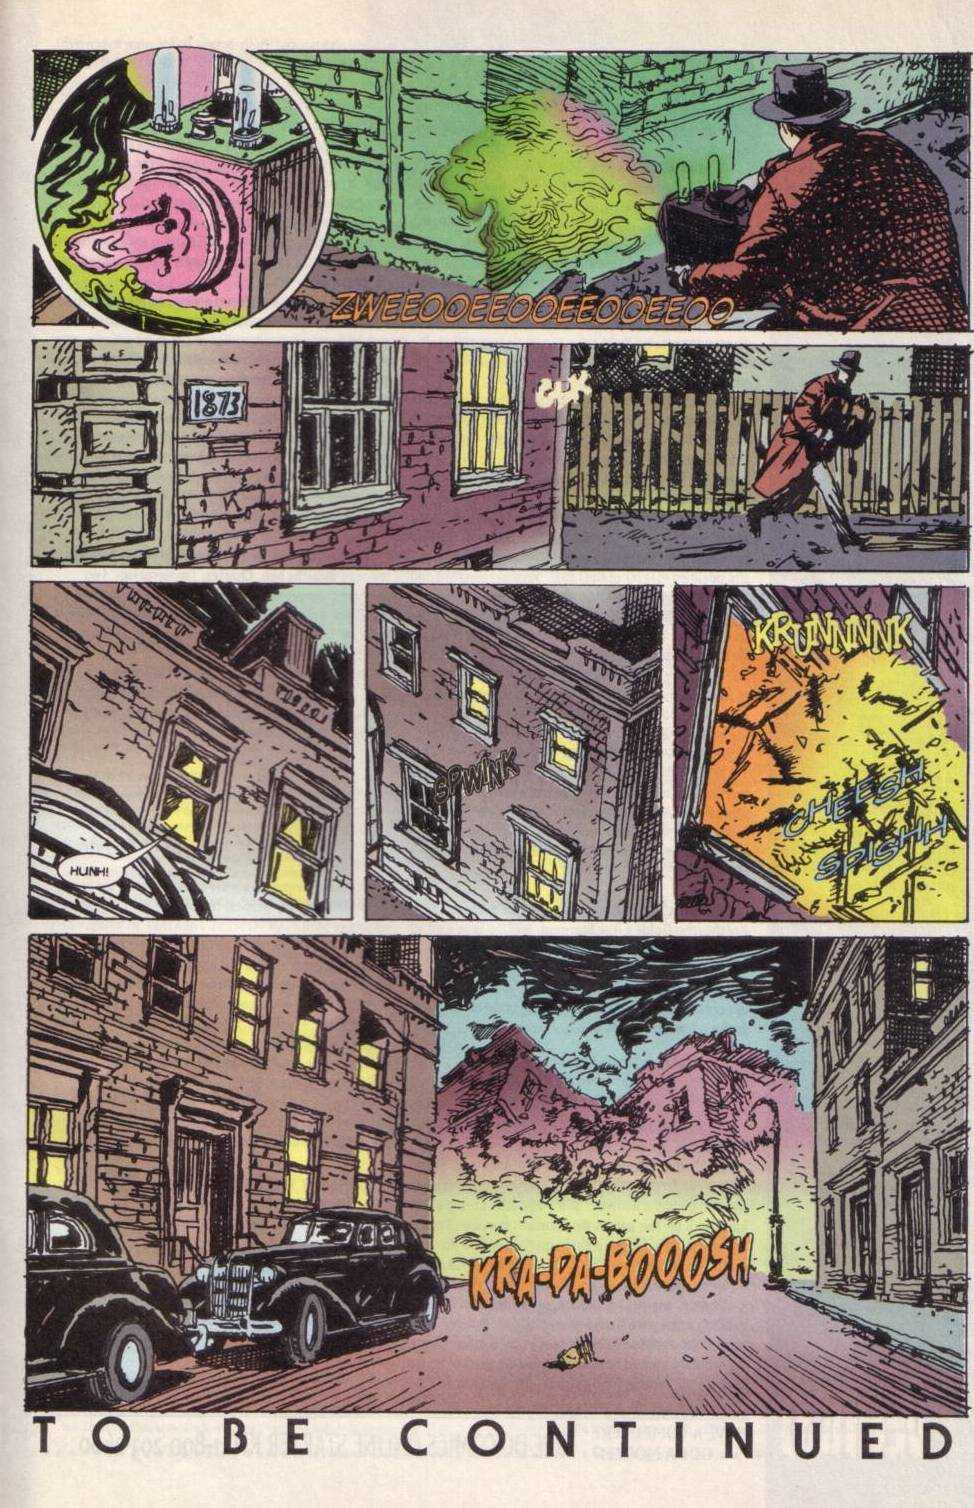 Sandman Mystery Theatre issue 39 - Page 23